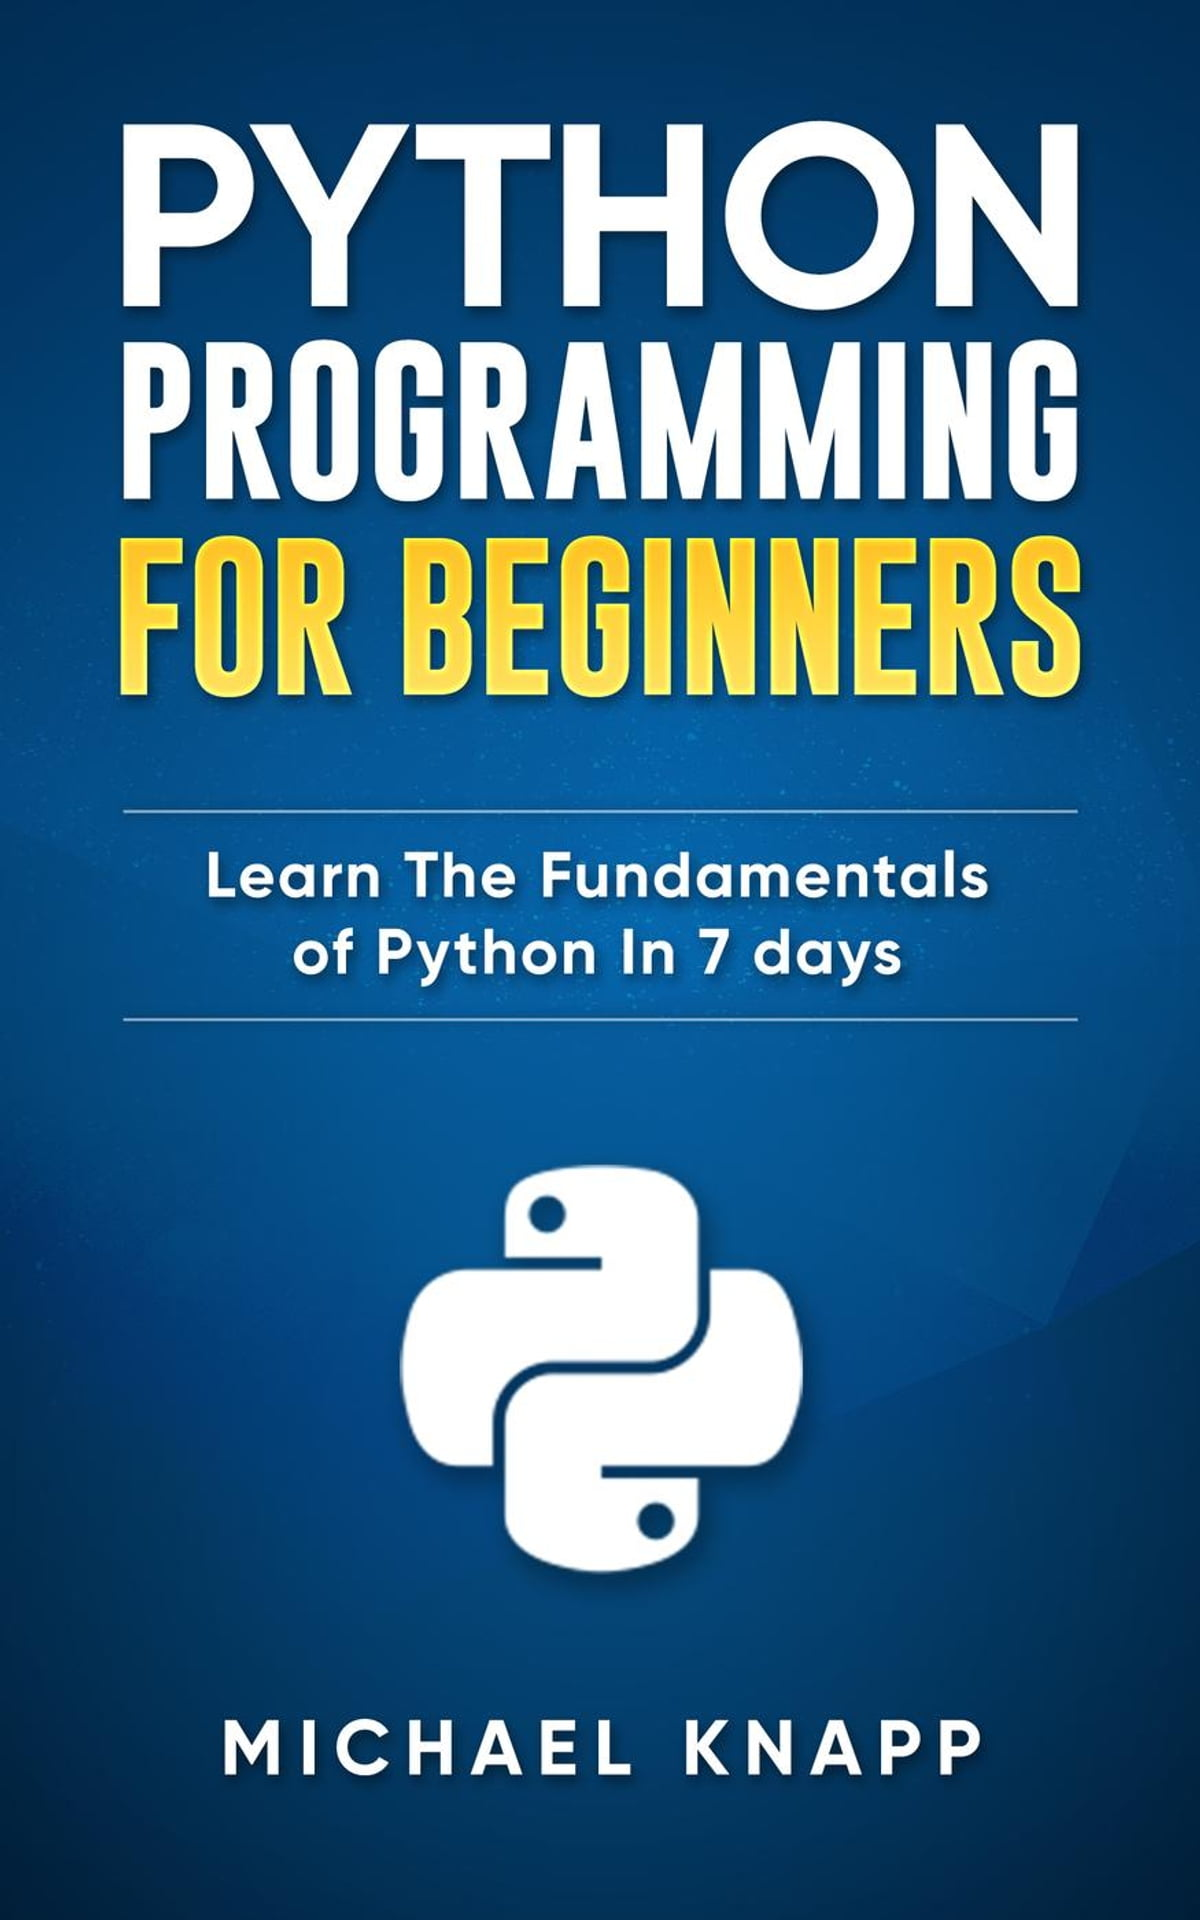 Libros Python Español Python Programming For Beginners Learn The Fundamentals Of Python In 7 Days Ebook By Michael Knapp Rakuten Kobo